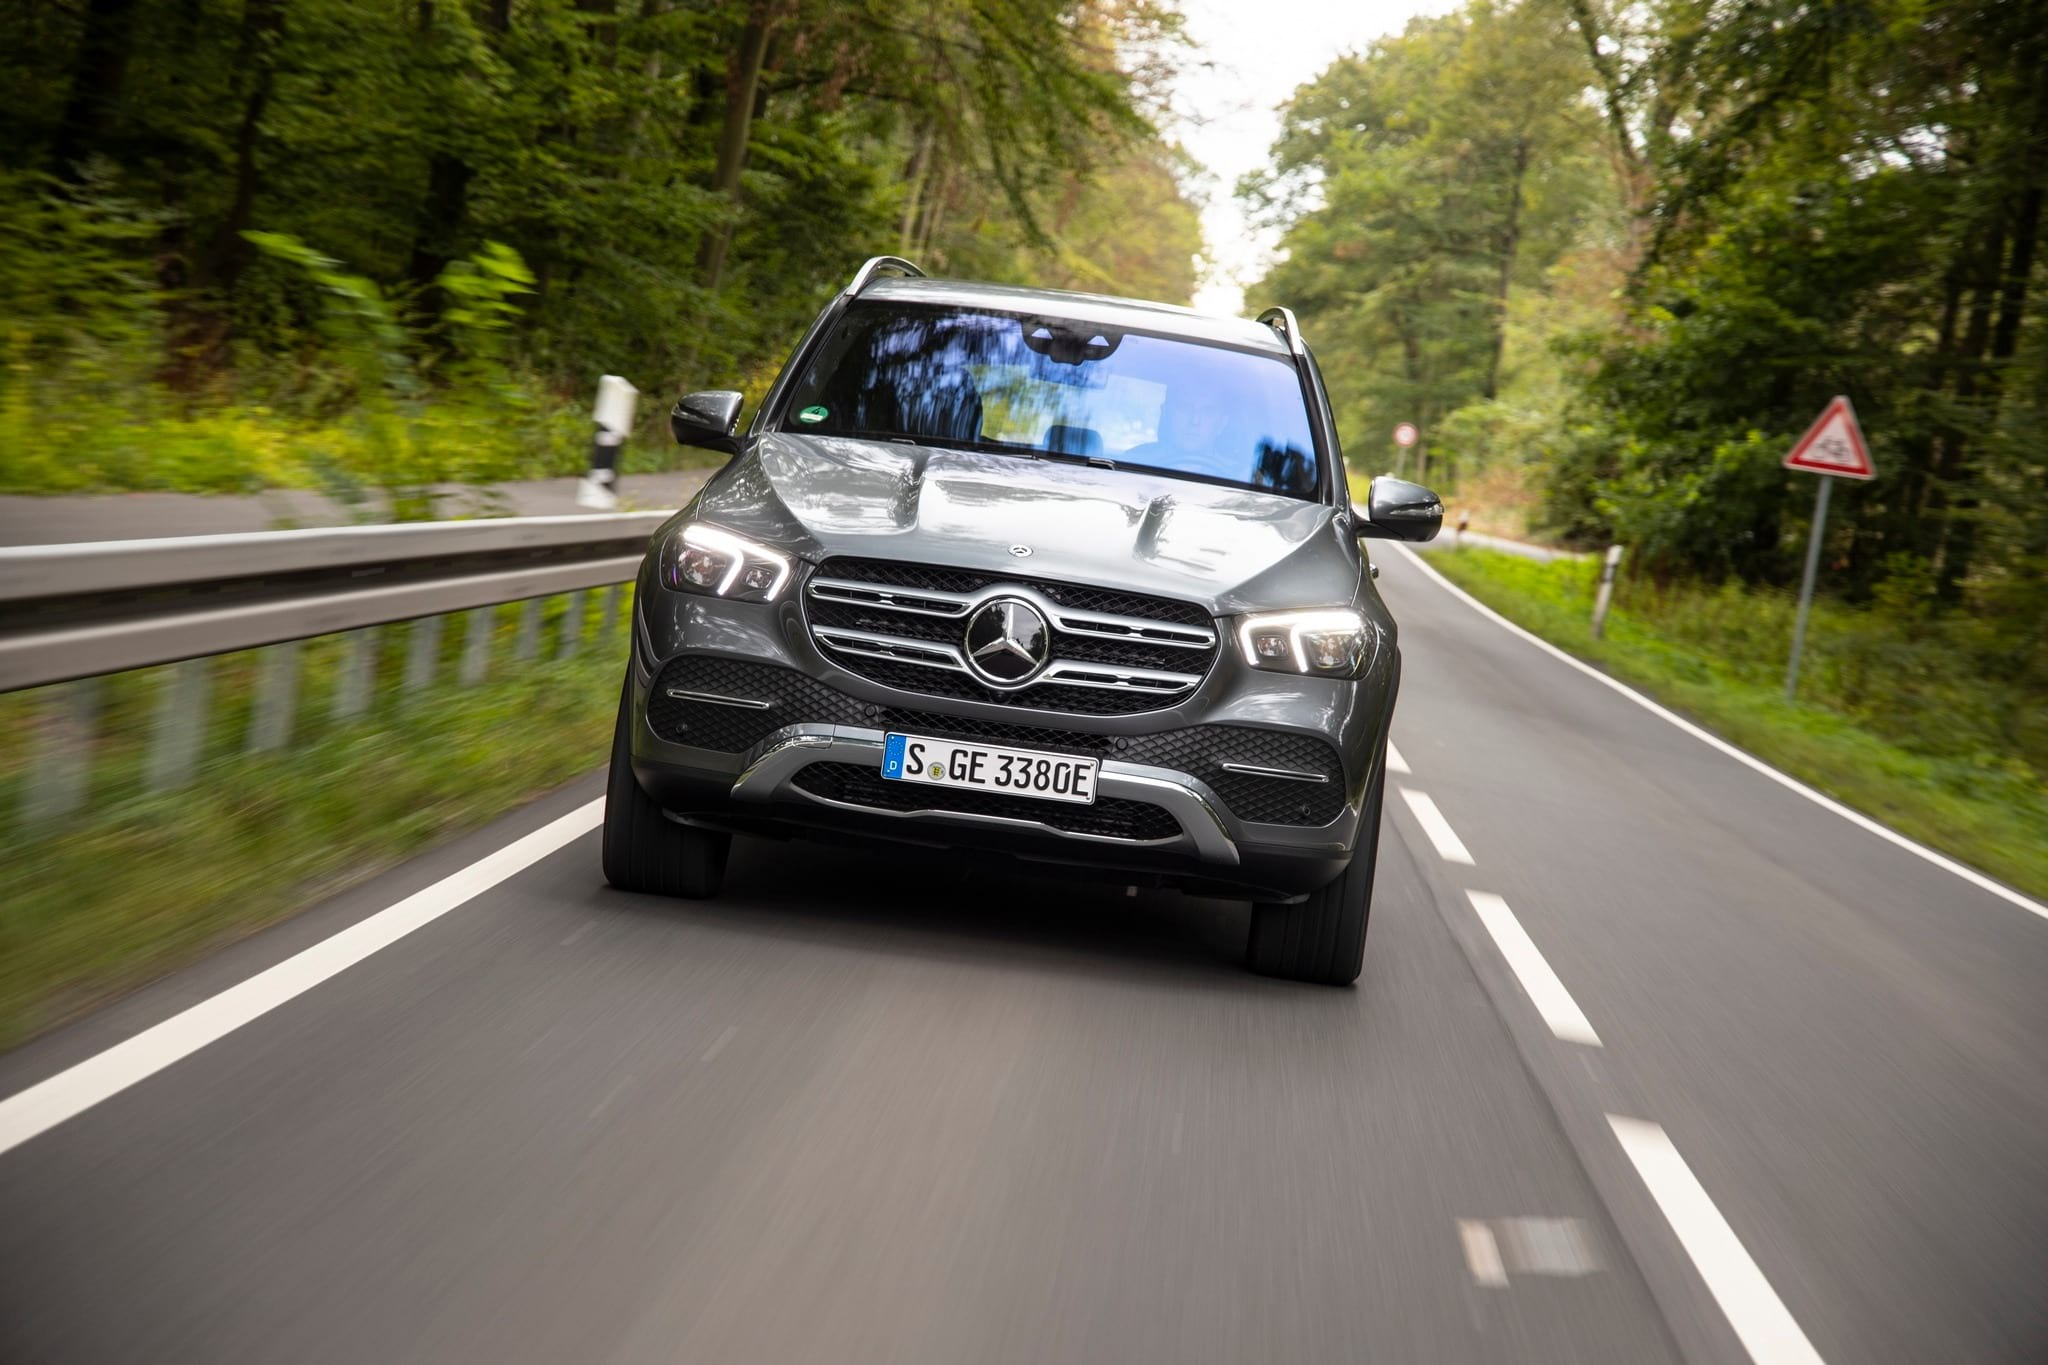 Новий GLE 350 de 4MATIC: рекордний запас ходу